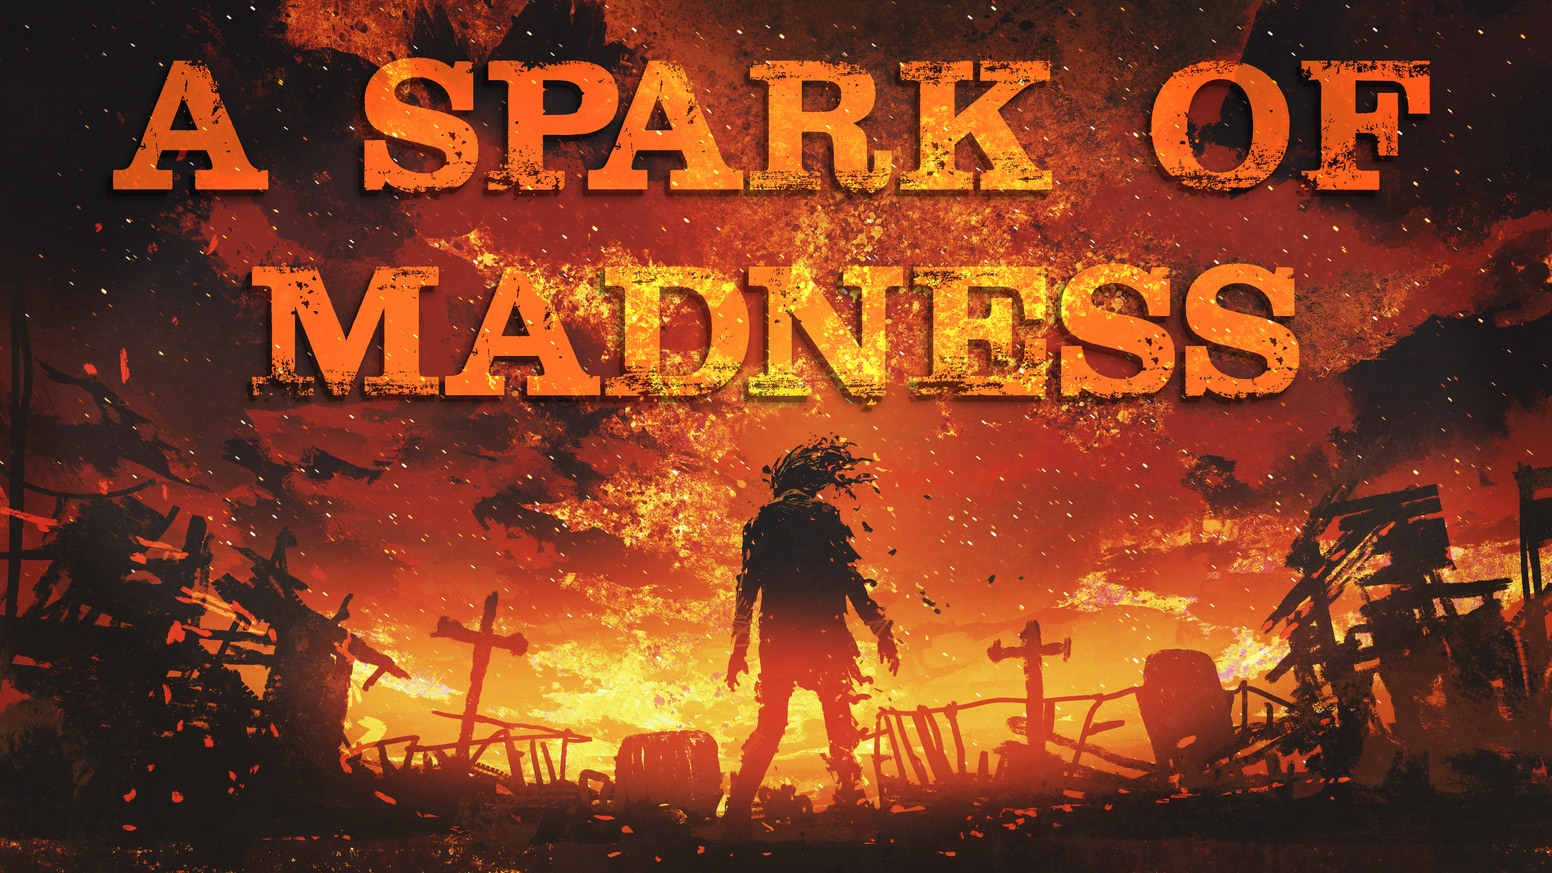 The Dragonfire Chronicles: A Spark of Madness by Lana Hart